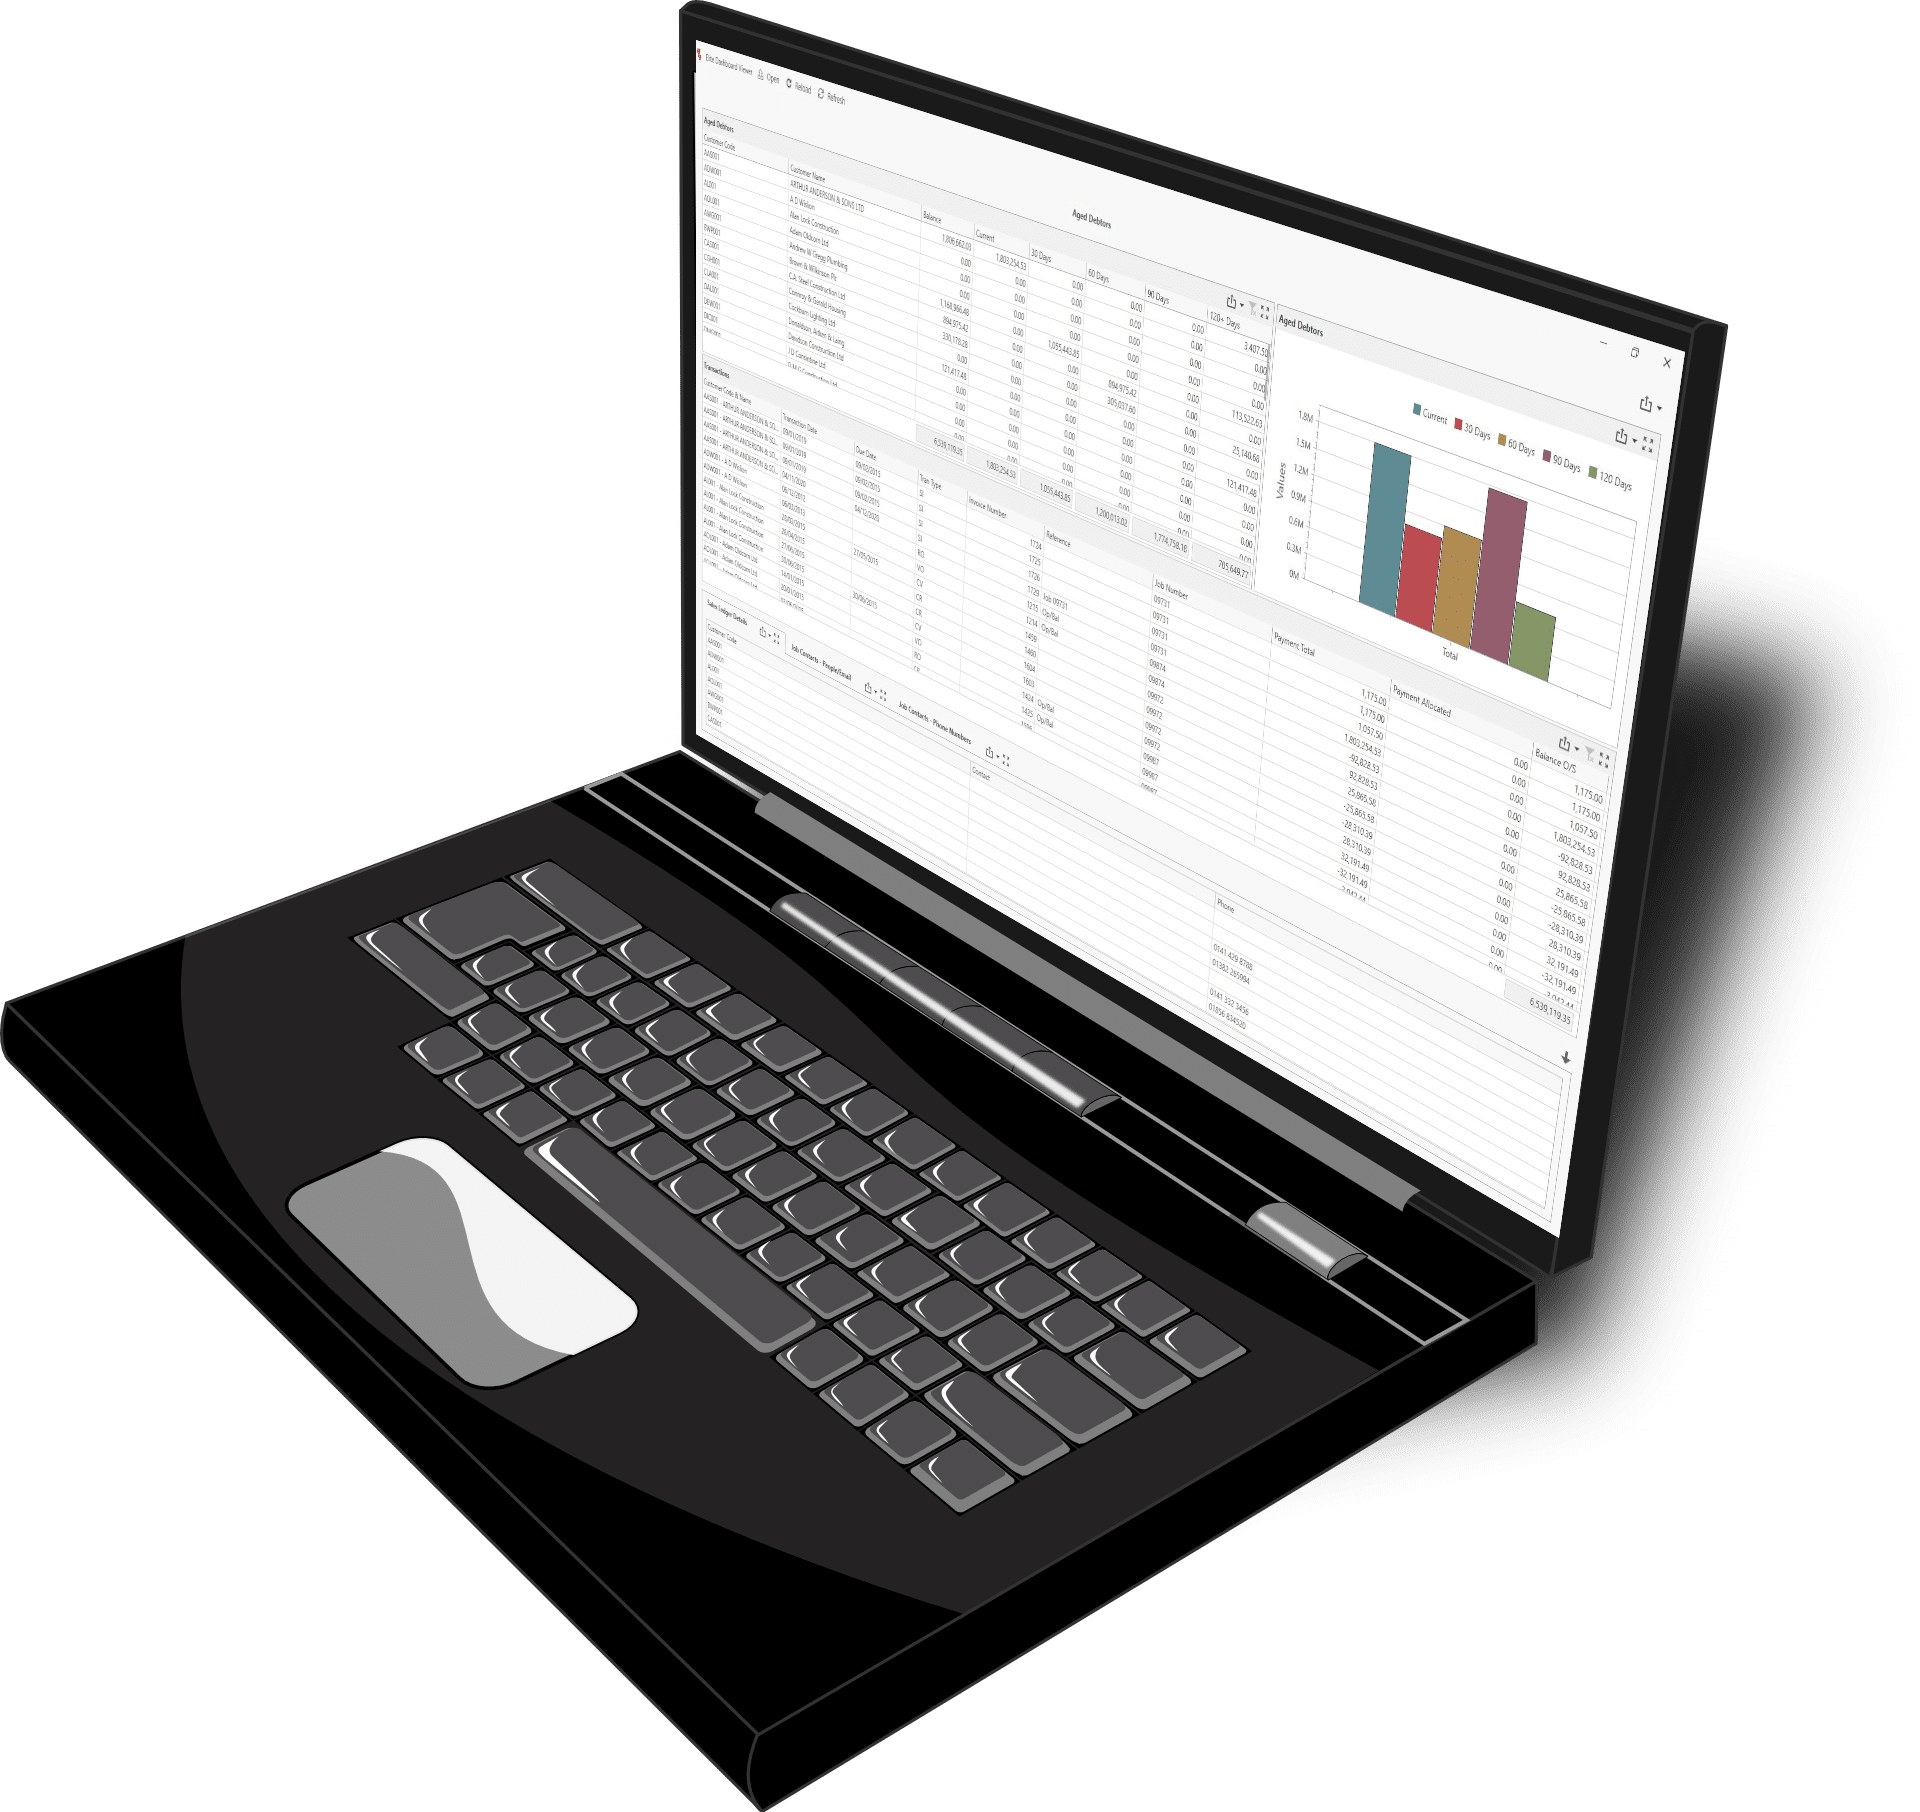 Open Laptop featuring Contract Costing Dashboard